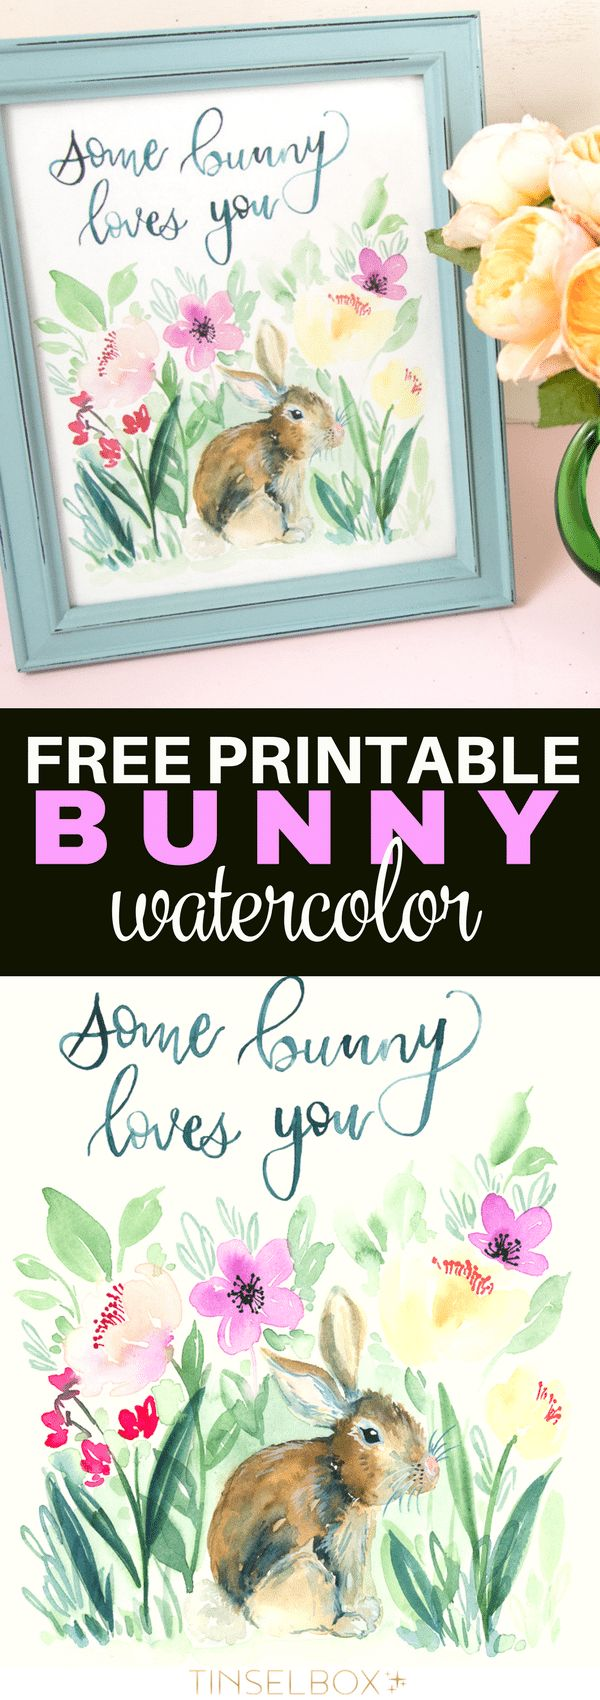 Who do you know who would love this Some Bunny Loves You Print complete with watercolor bunny. It's a free printable for the world to share! Great for #Easter #Nursery